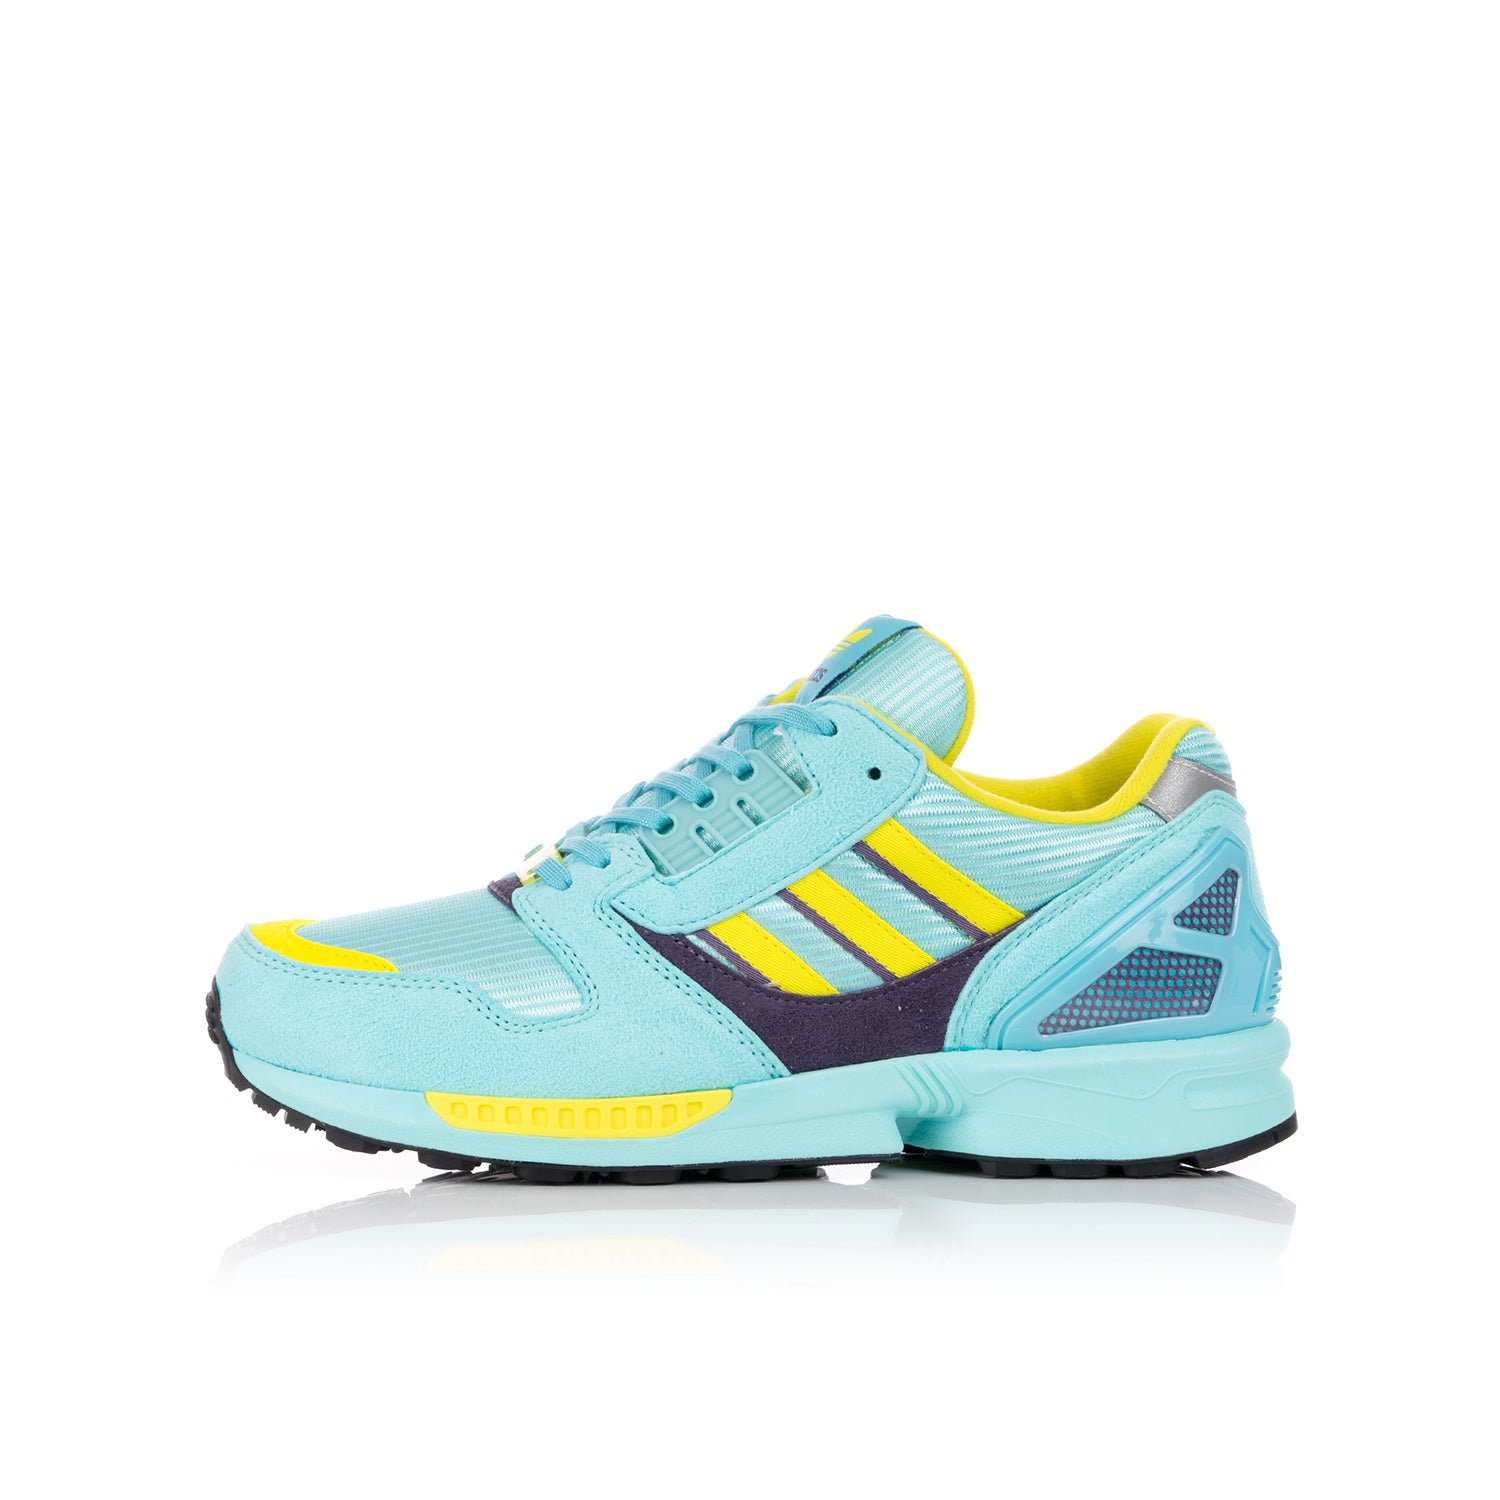 Low price Adidas Originals | Adidas Jeans City Series Shoes